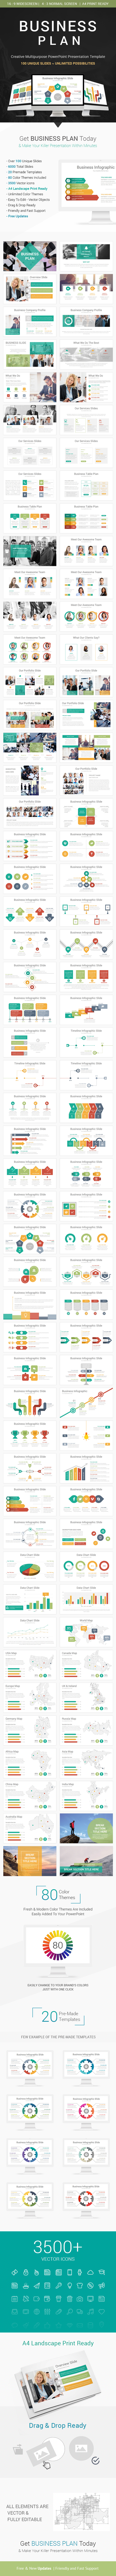 GraphicRiver Business Plan PowerPoint Presentation Template 20790529